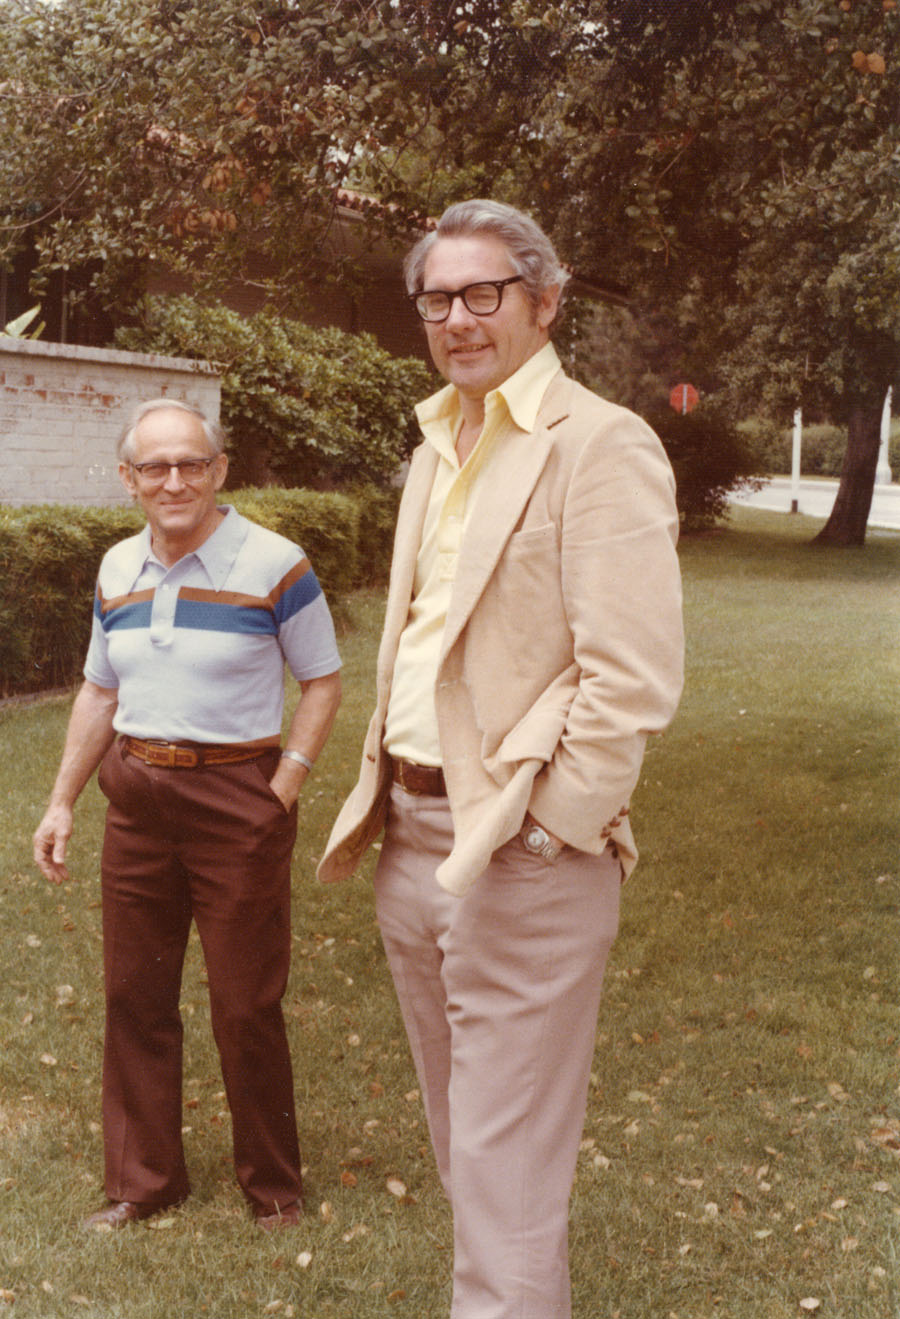 Bob James and Bill LeVeque